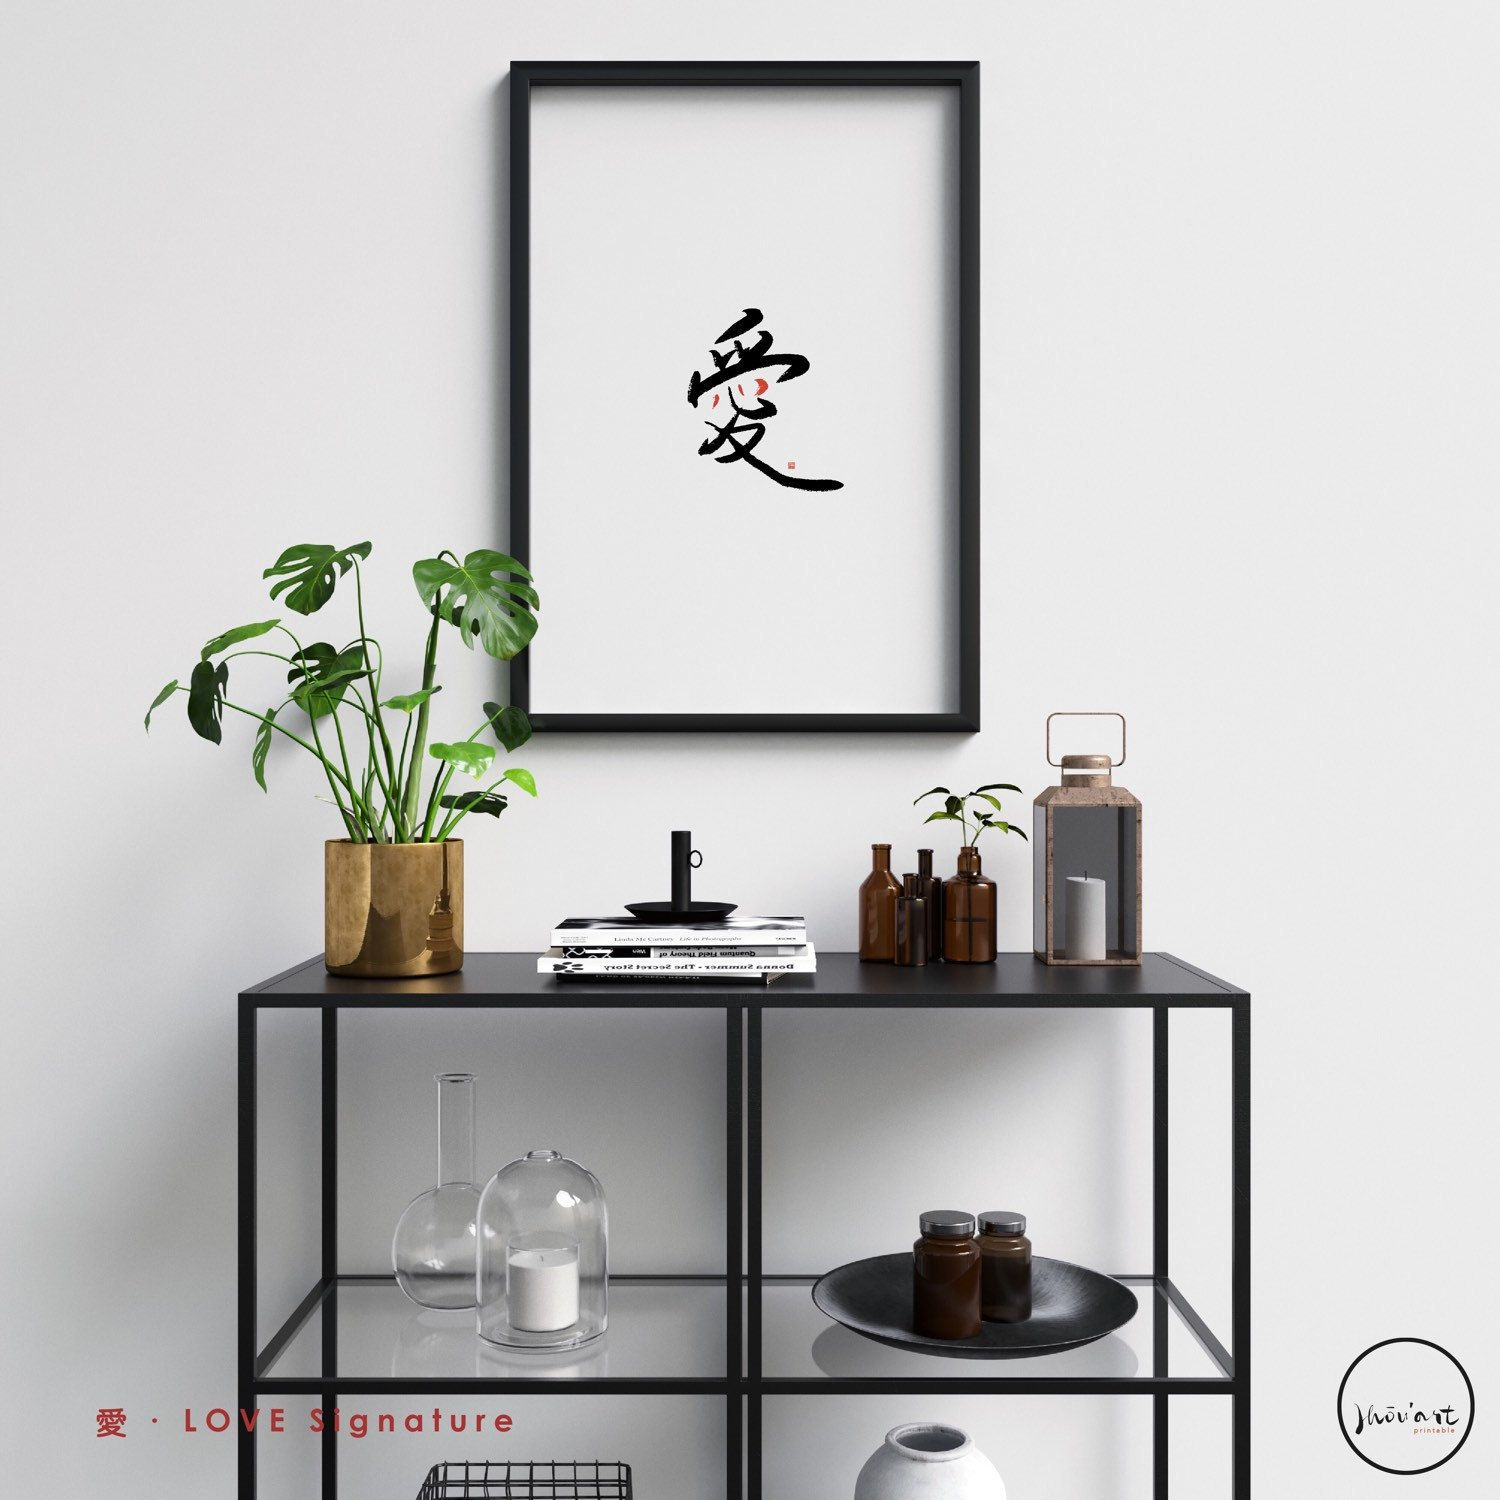 Love 愛 Chinese Calligraphy Art Printable For Home & Office